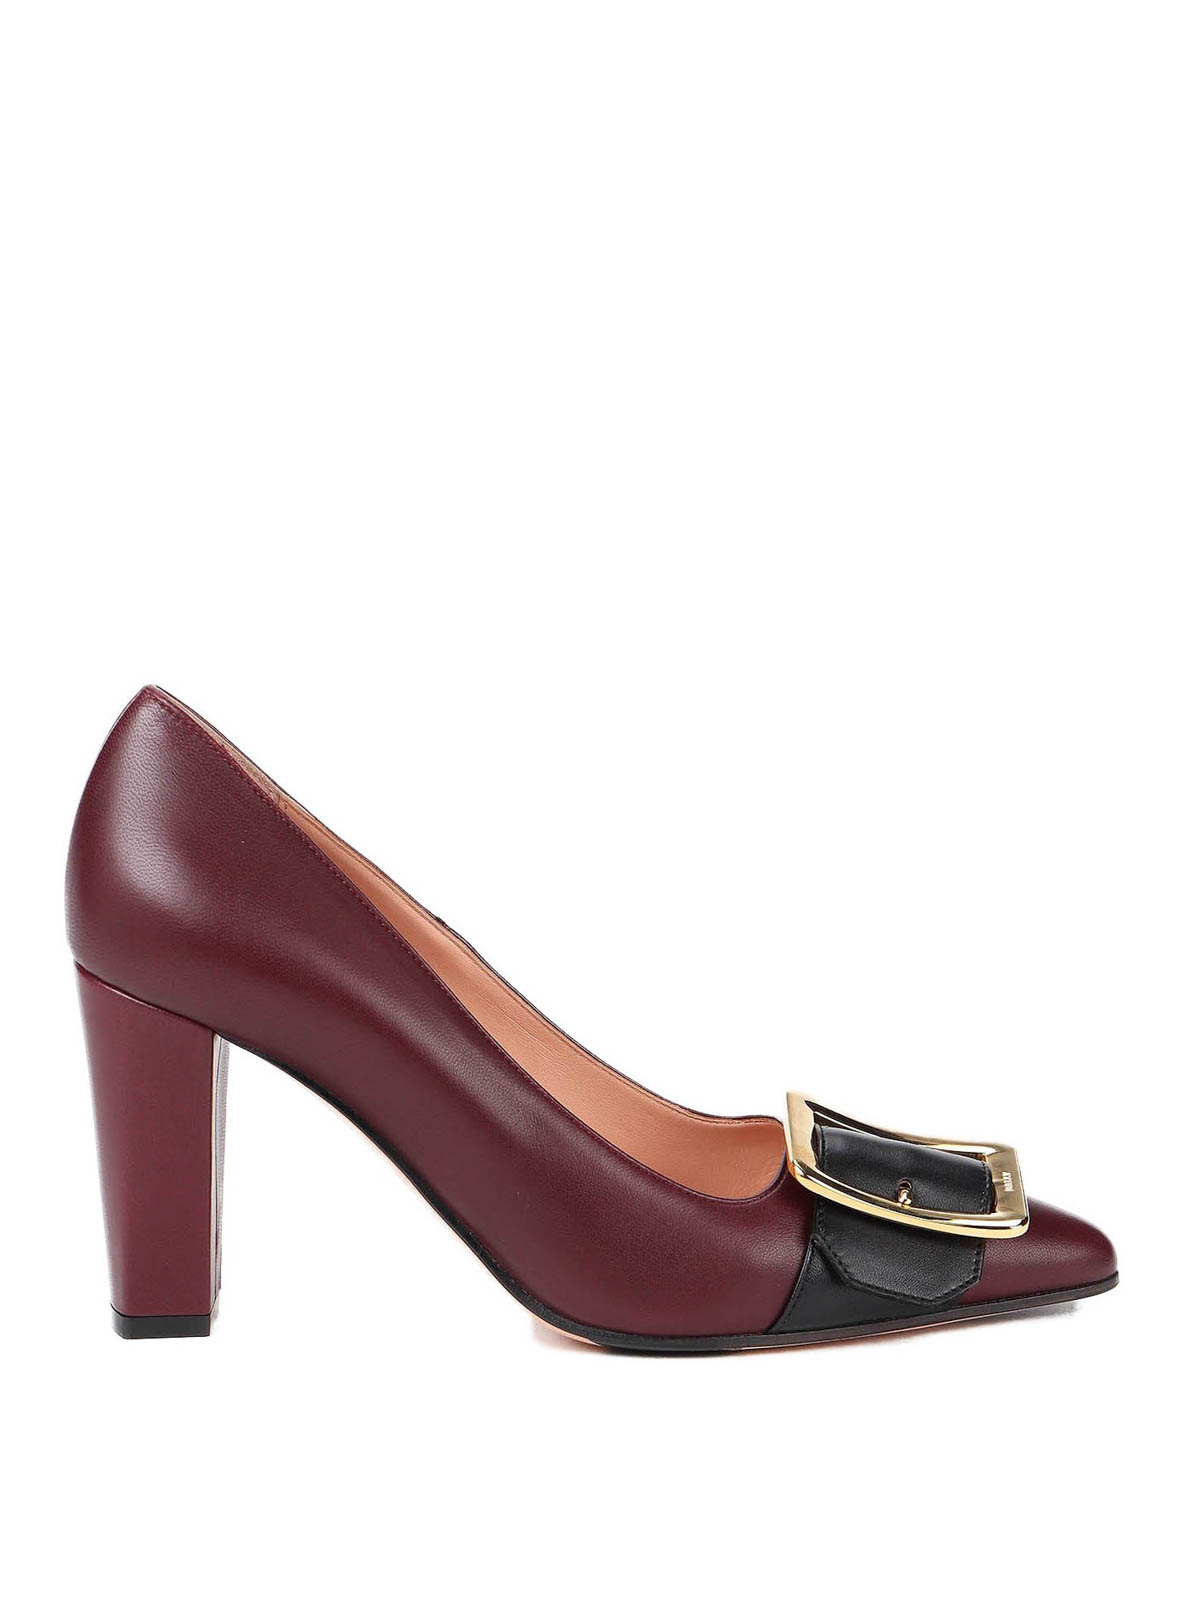 Bally JACQUELINE 85 PUMPS